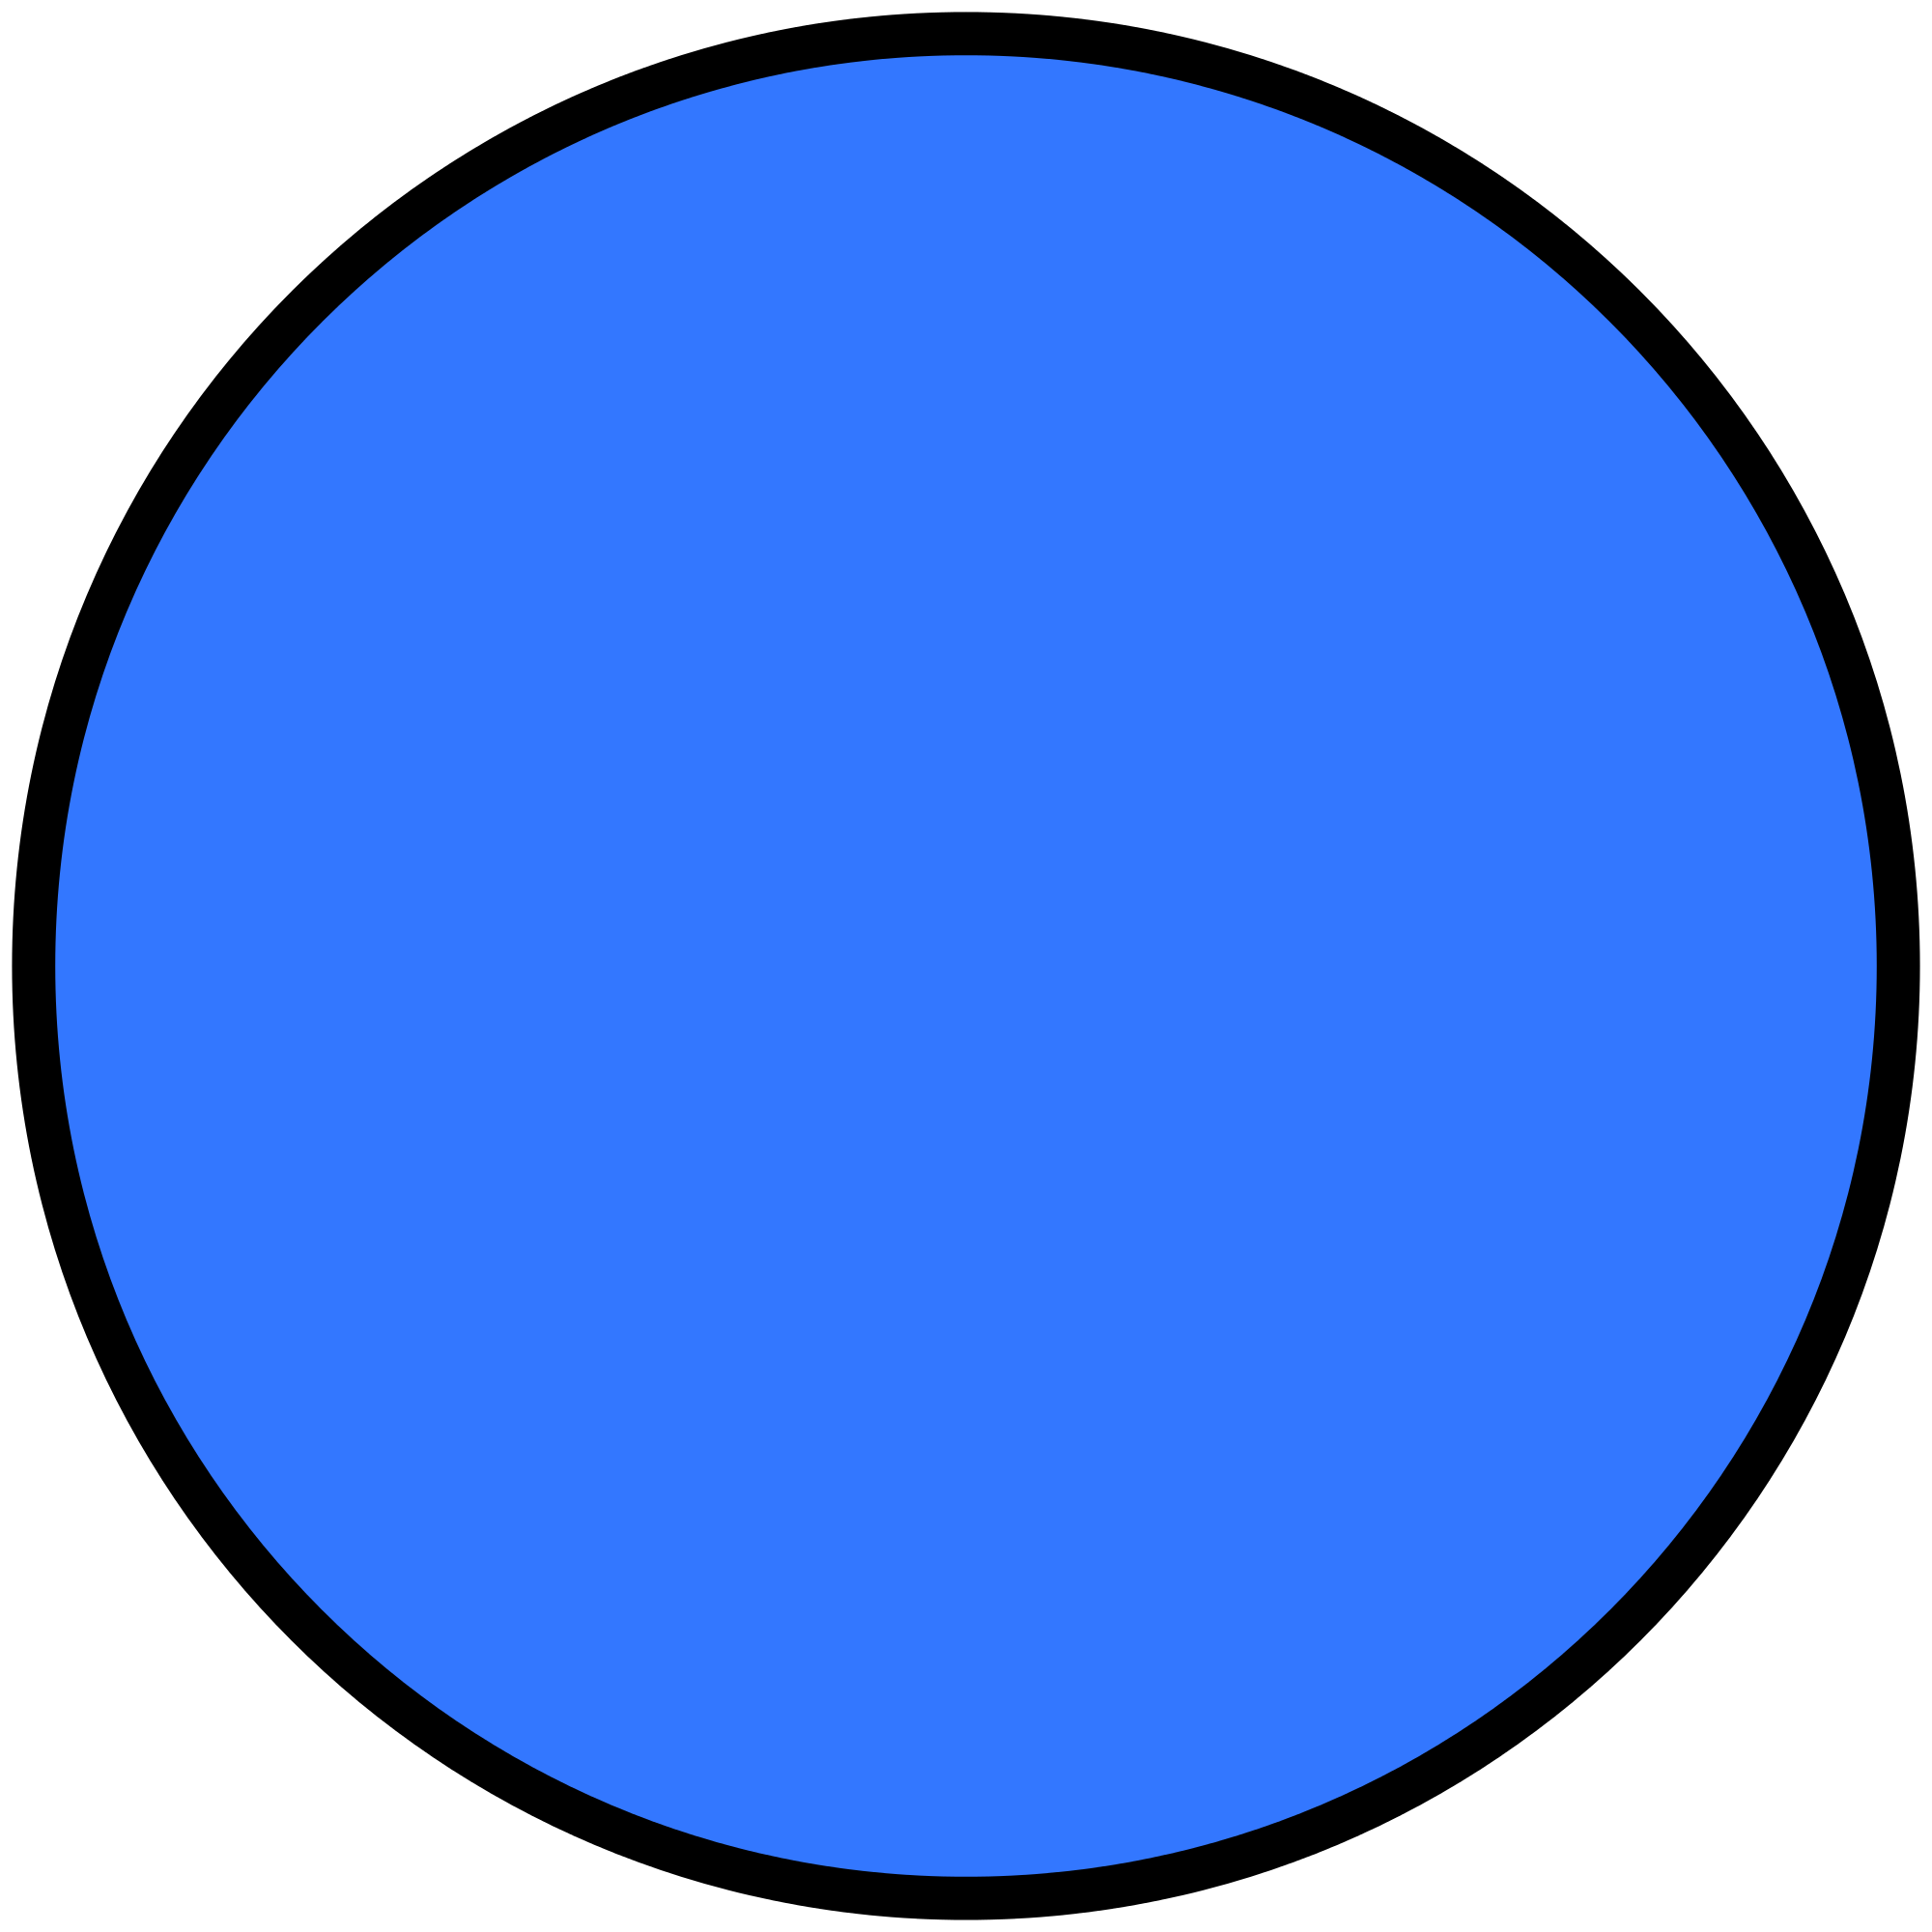 Dot clipart light blue. File lightbluedot svg wikimedia